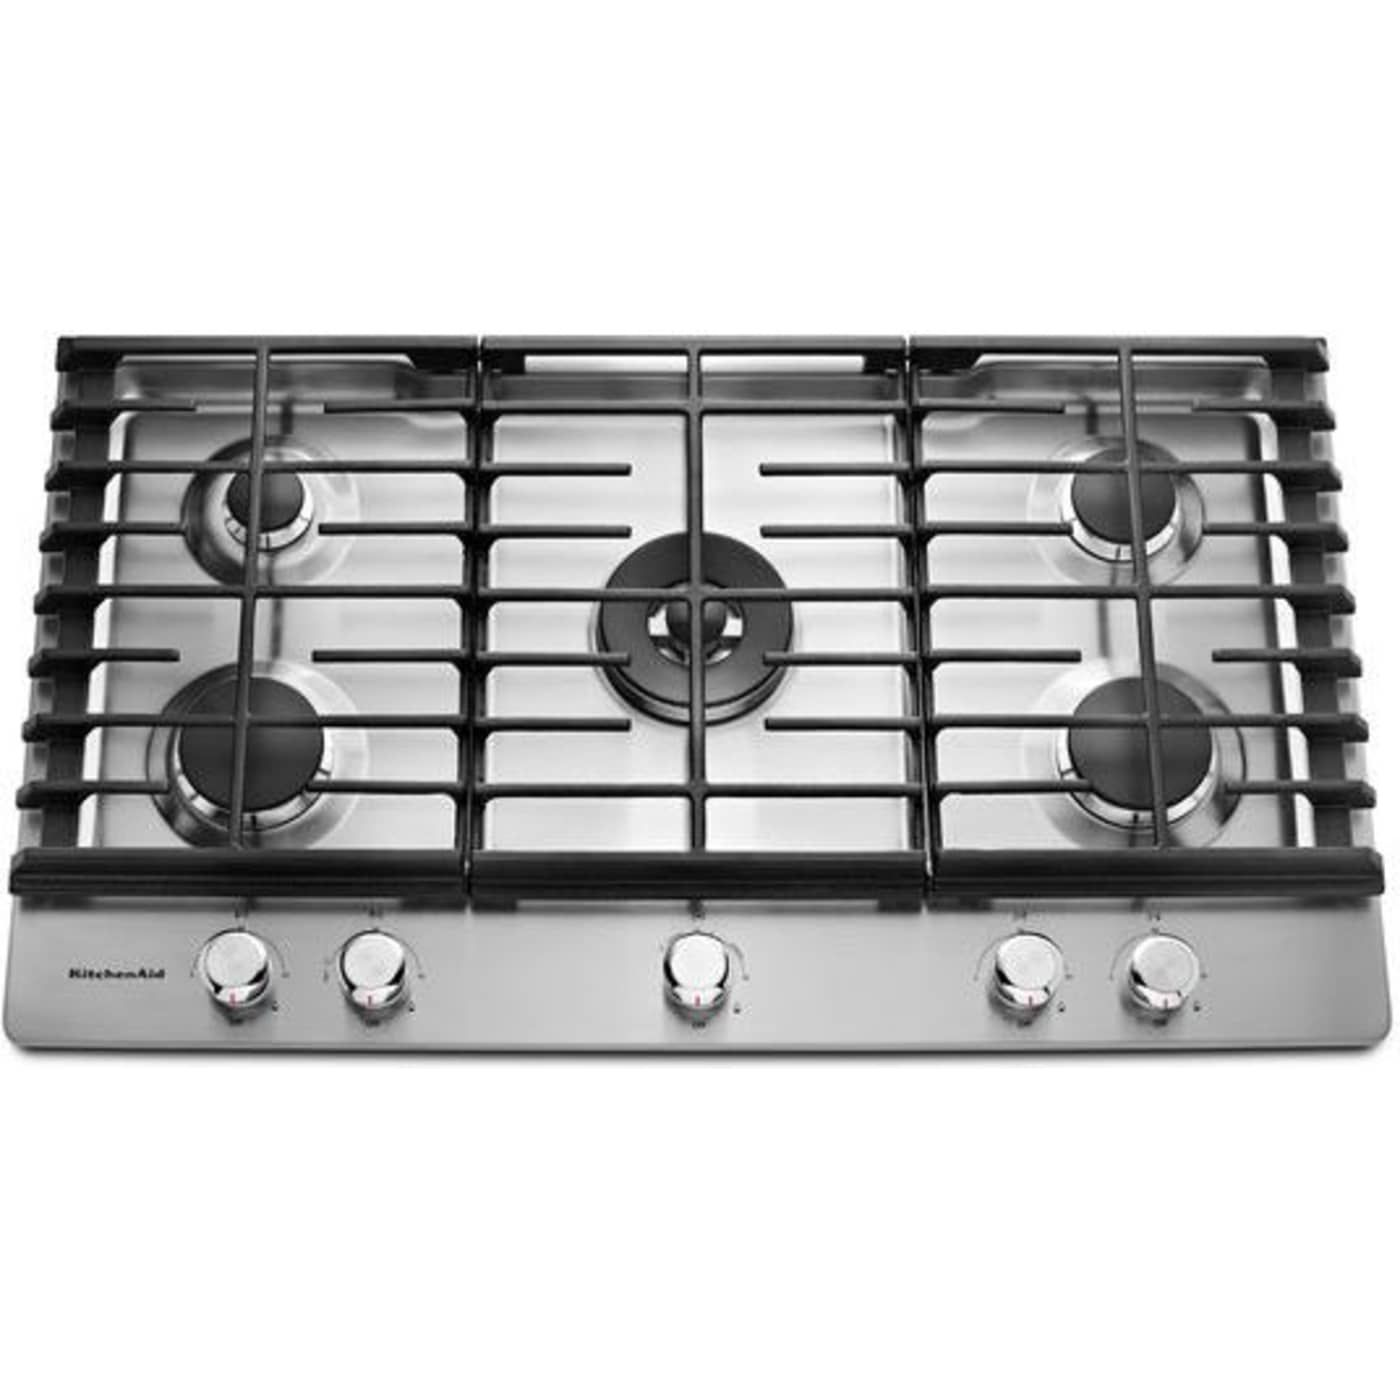 Kcgs556ess By Kitchenaid Natural Gas Cooktops Goedekers Com Kitchen Aid Appliances Stove Stainless Steel